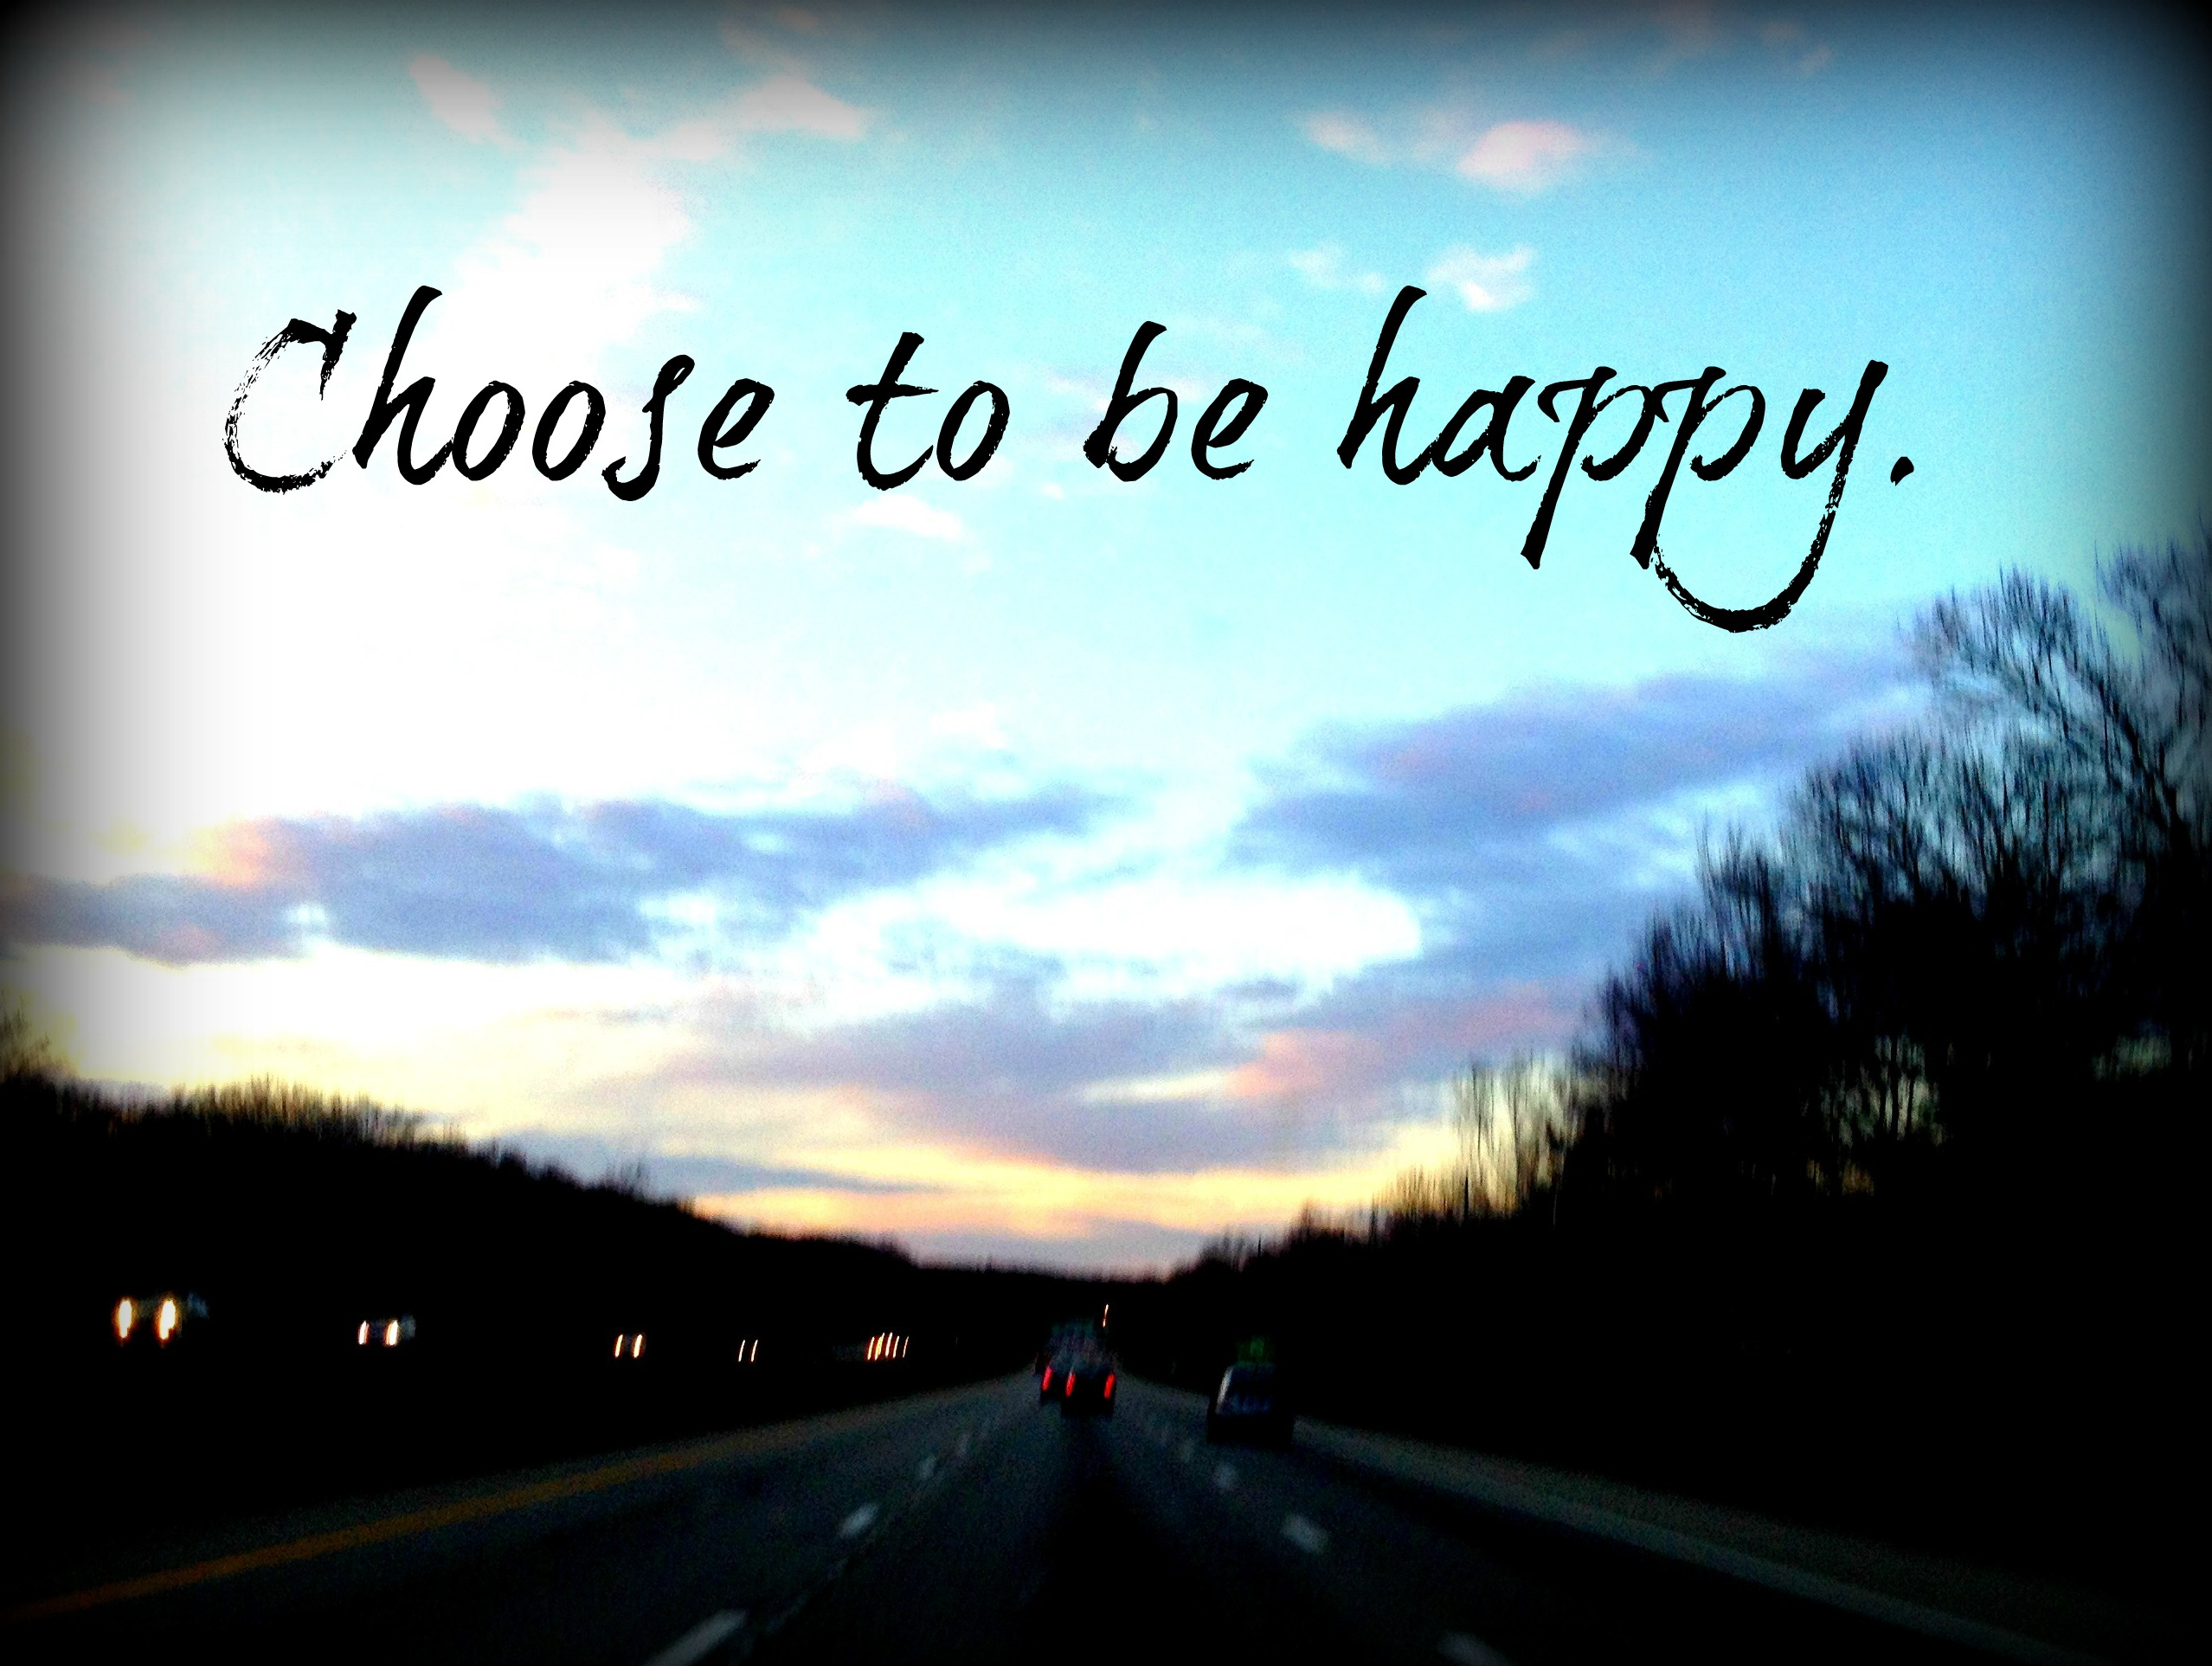 I Choose To Be Happy Quotes. QuotesGram